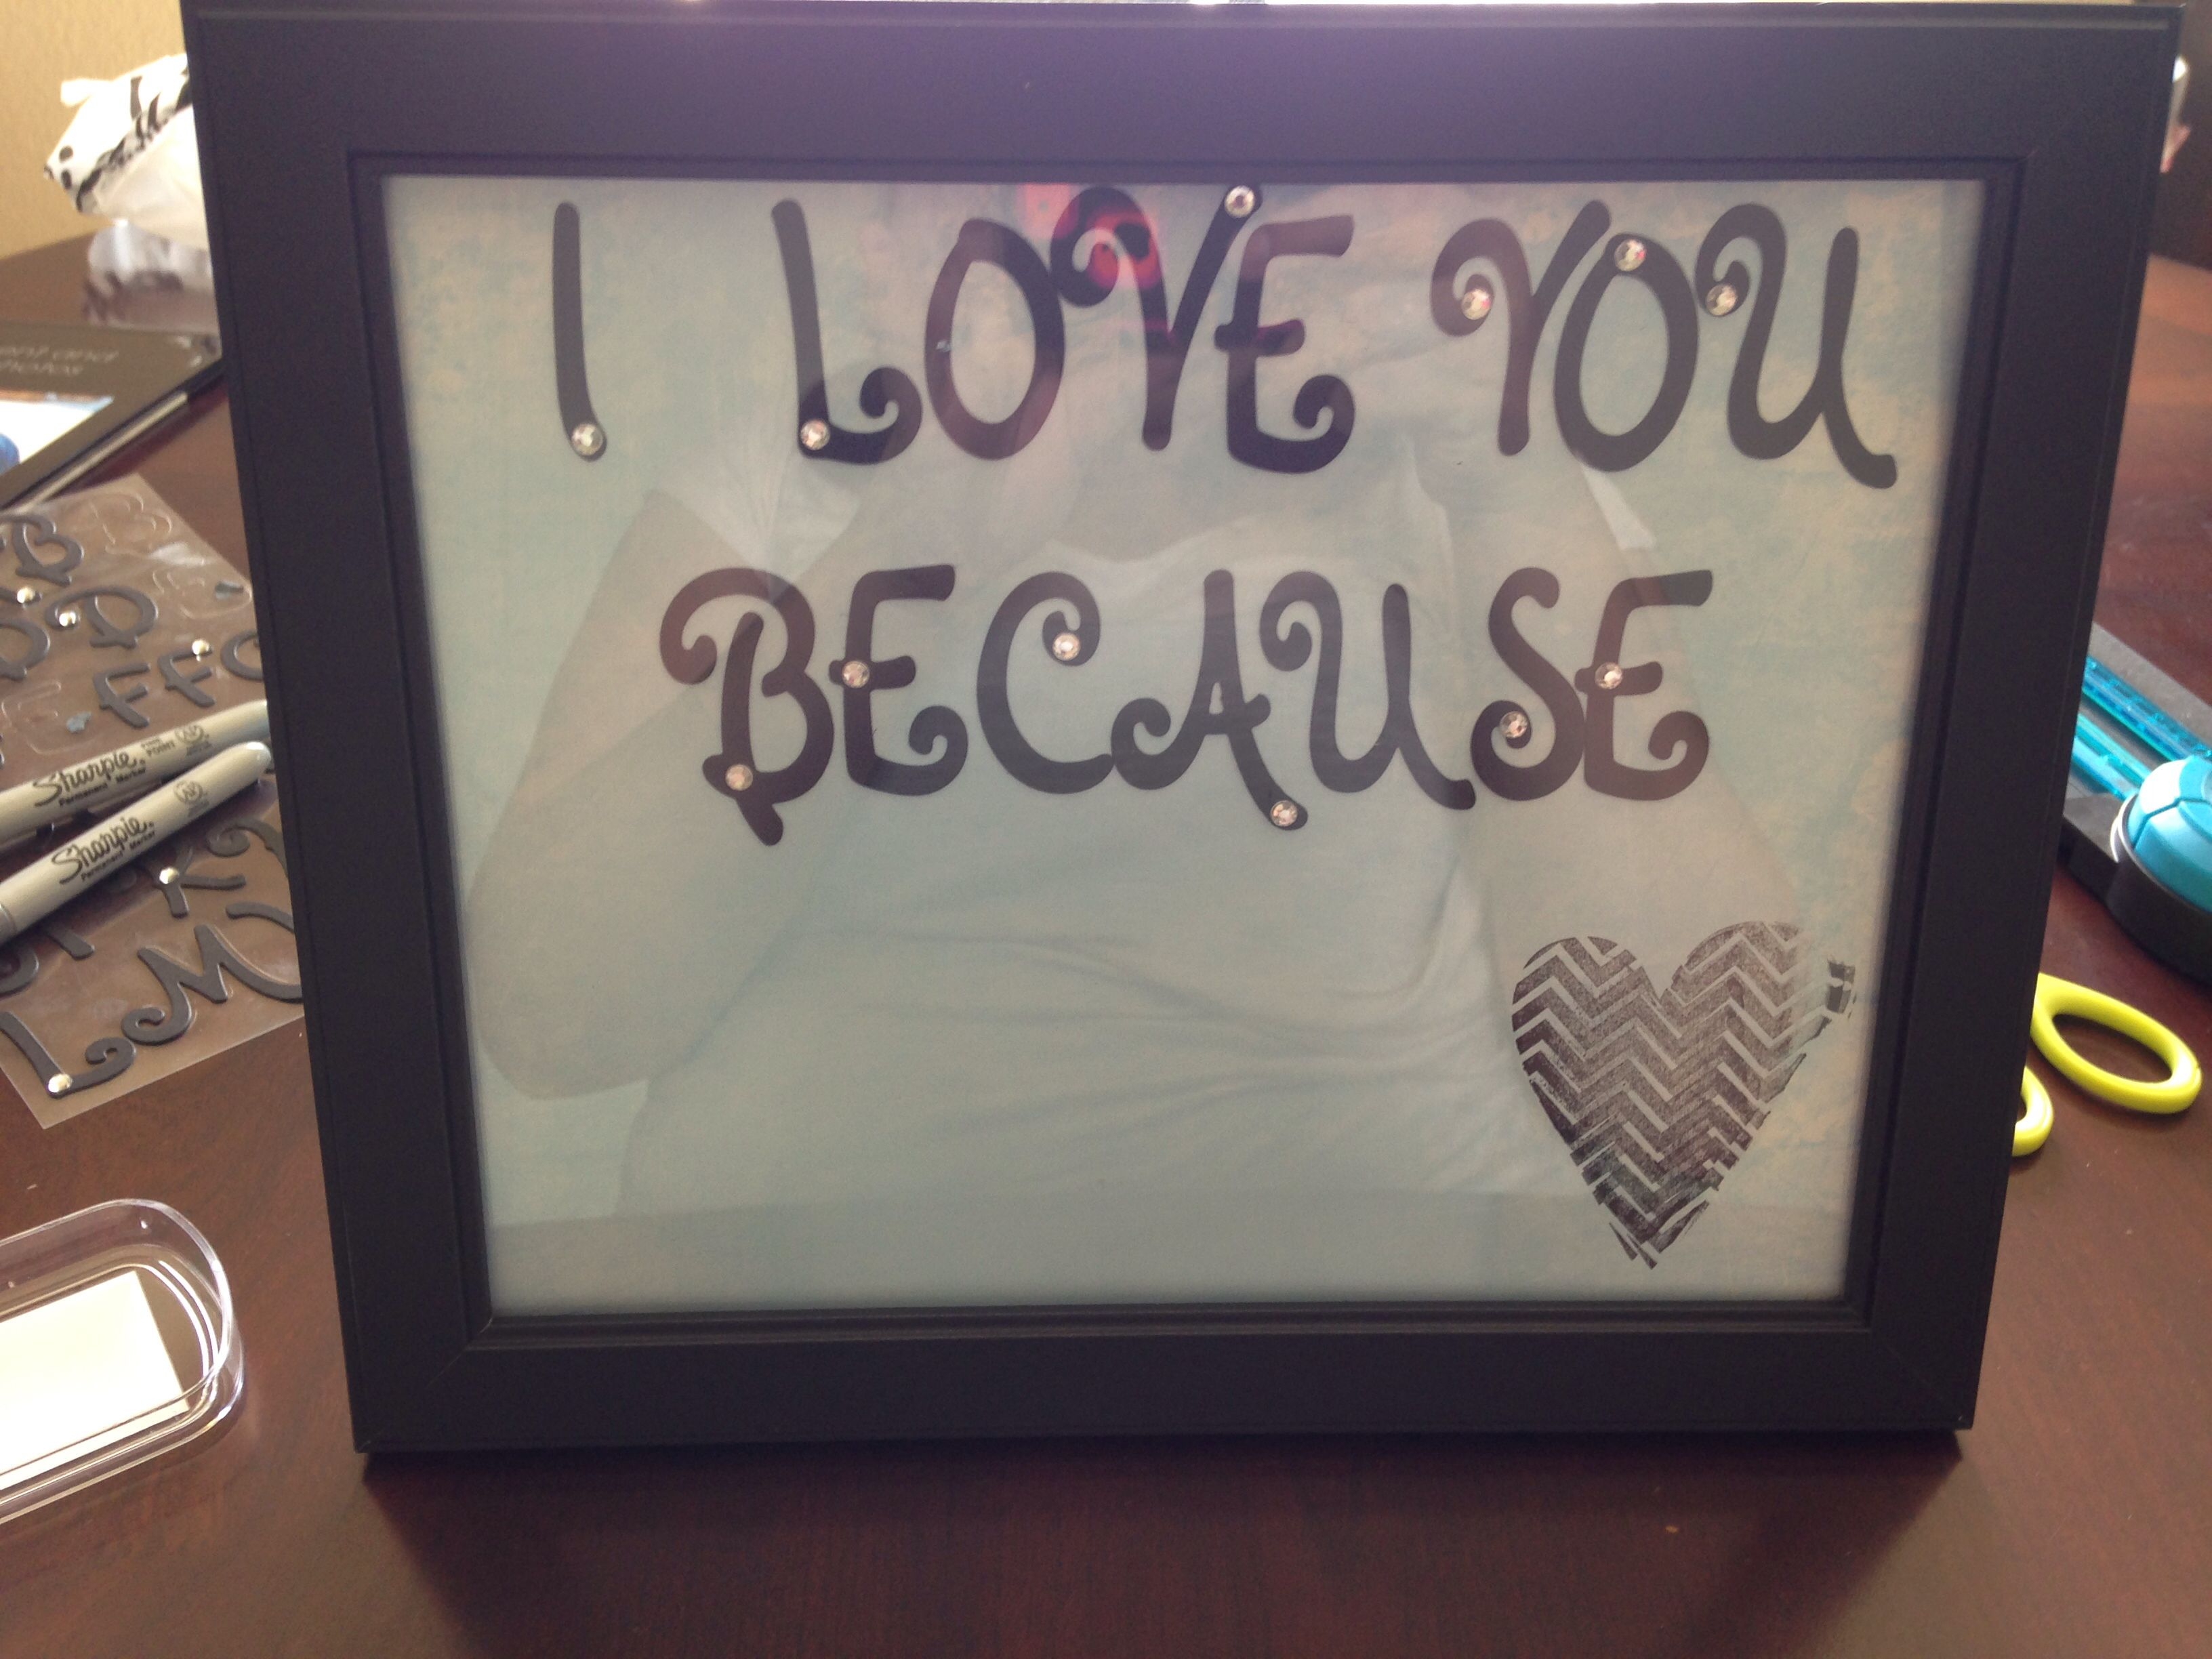 I love you because ...